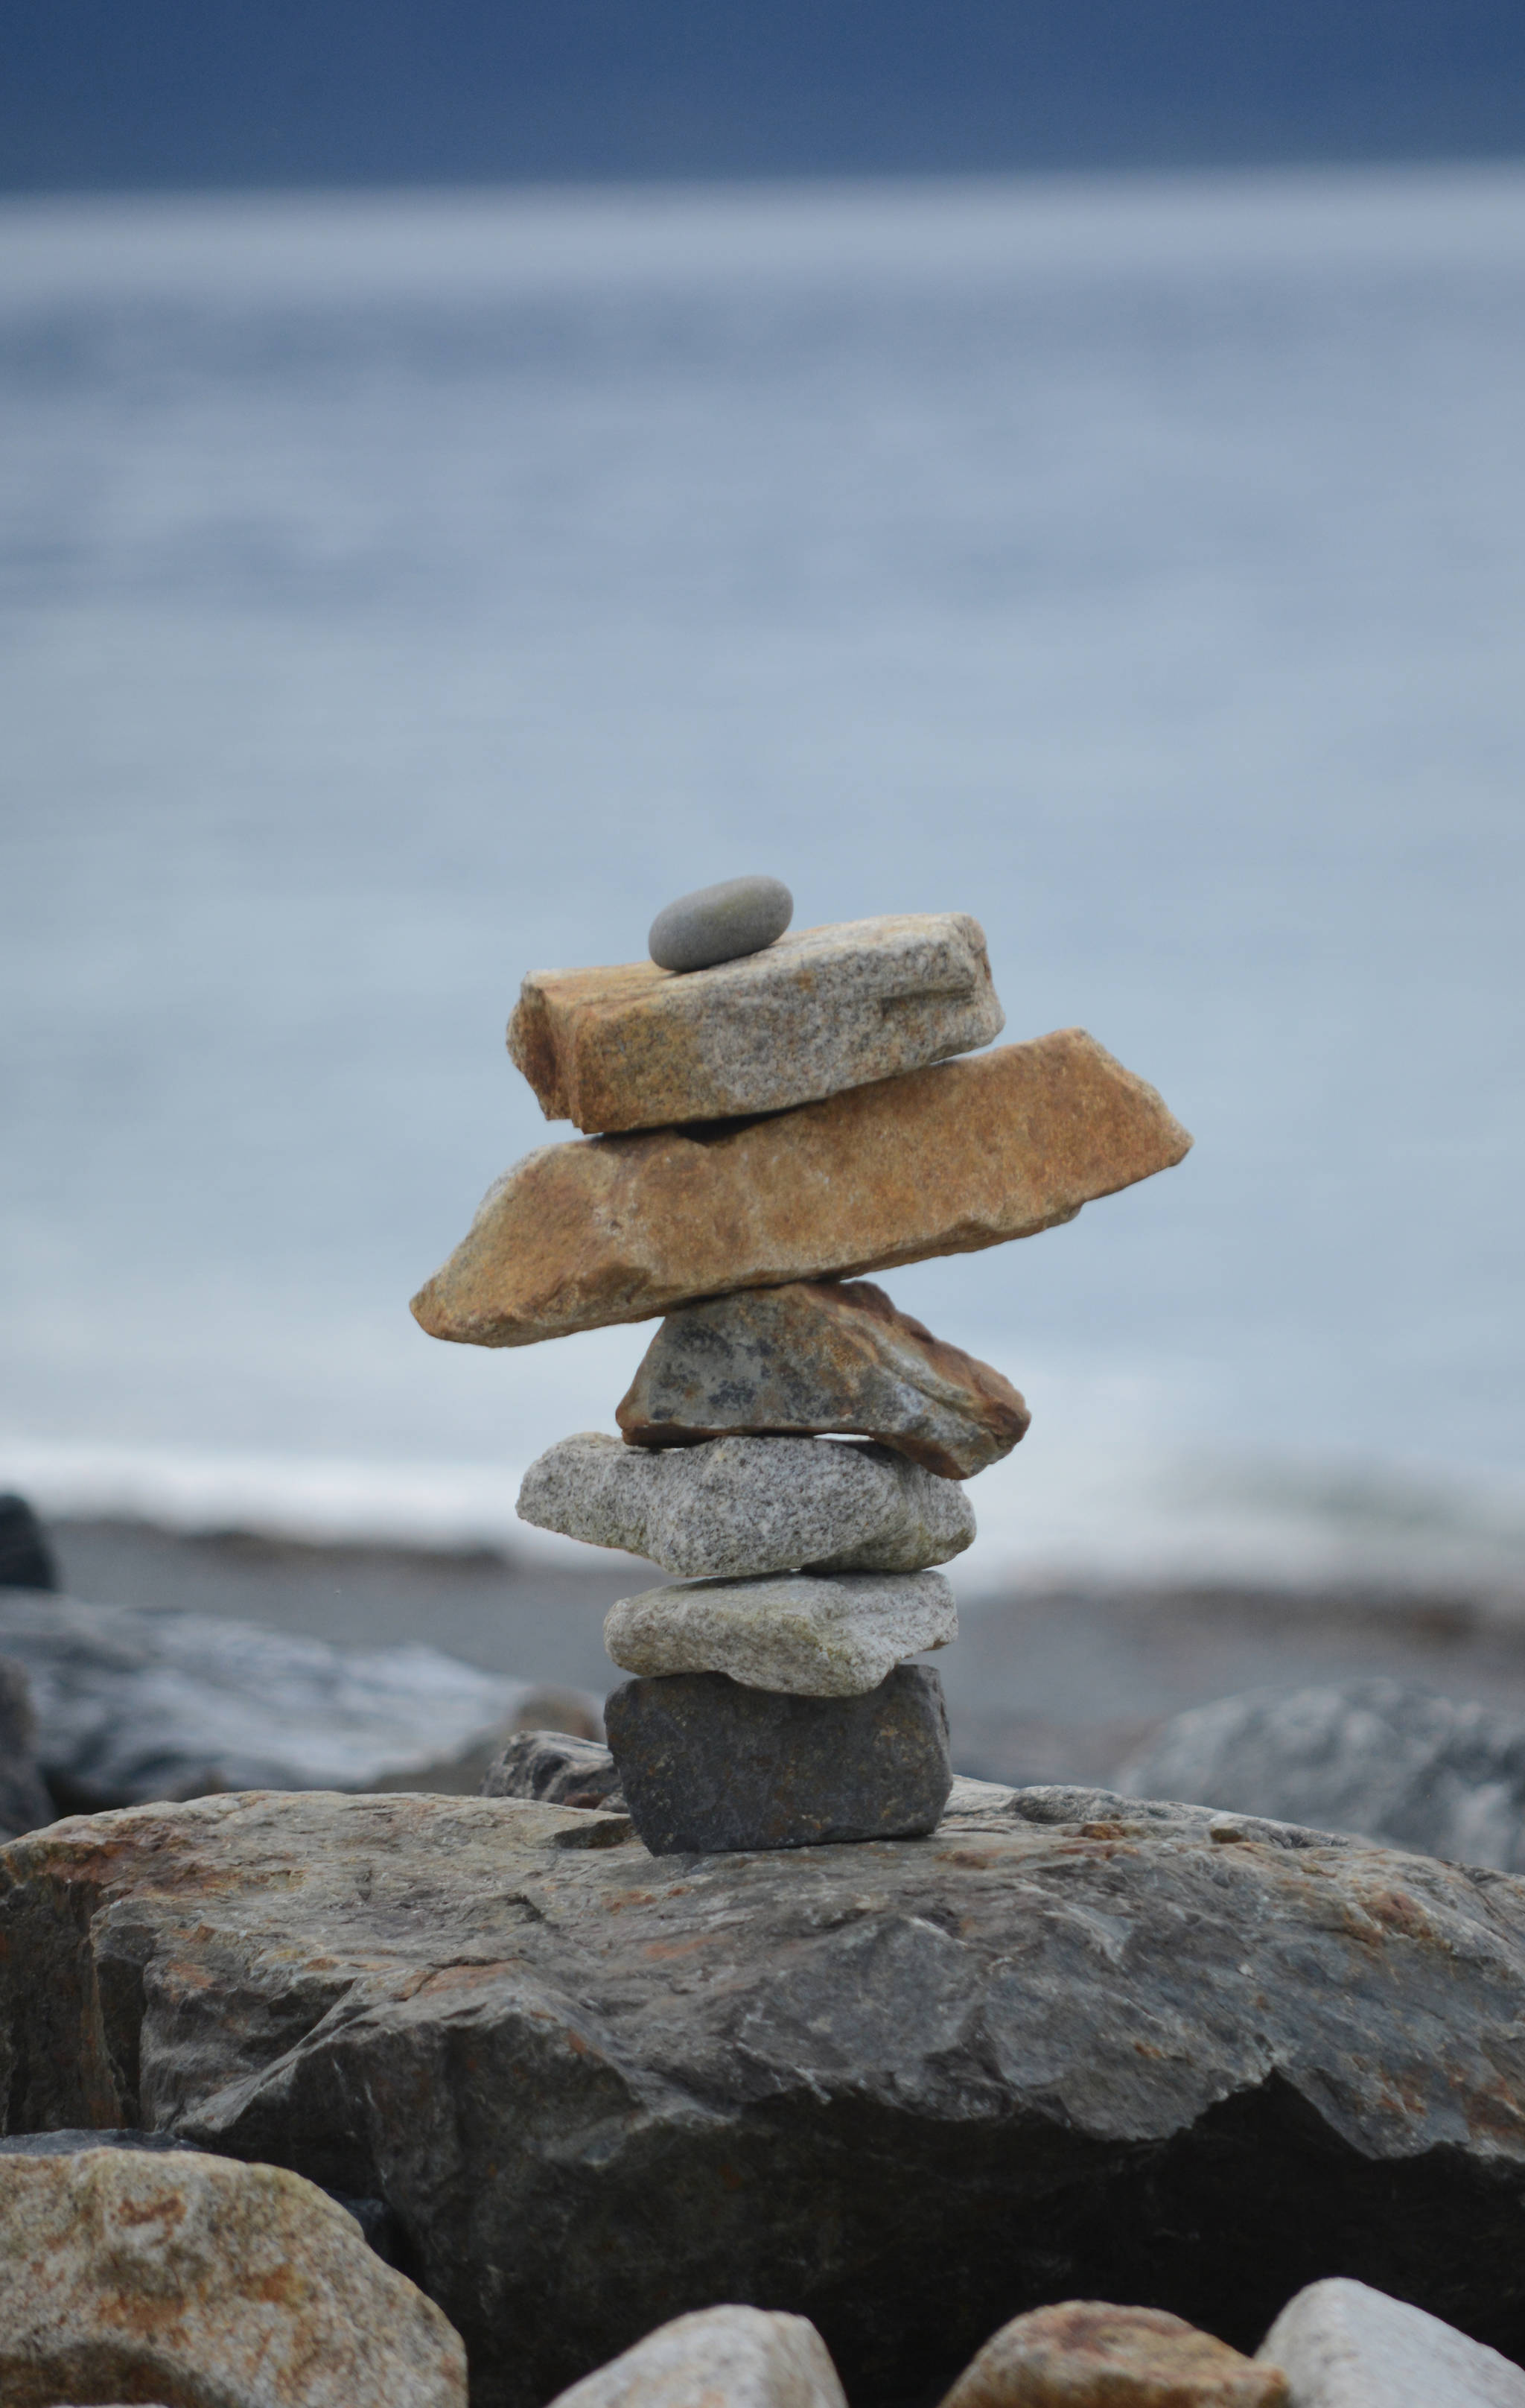 A rock sculpture is one of dozens an artist made along the Homer Spit last week, as seen in this photo taken Friday, Sept. 21, 2018, in Homer, Alaska. (Photo by Michael Armstrong/Homer News)